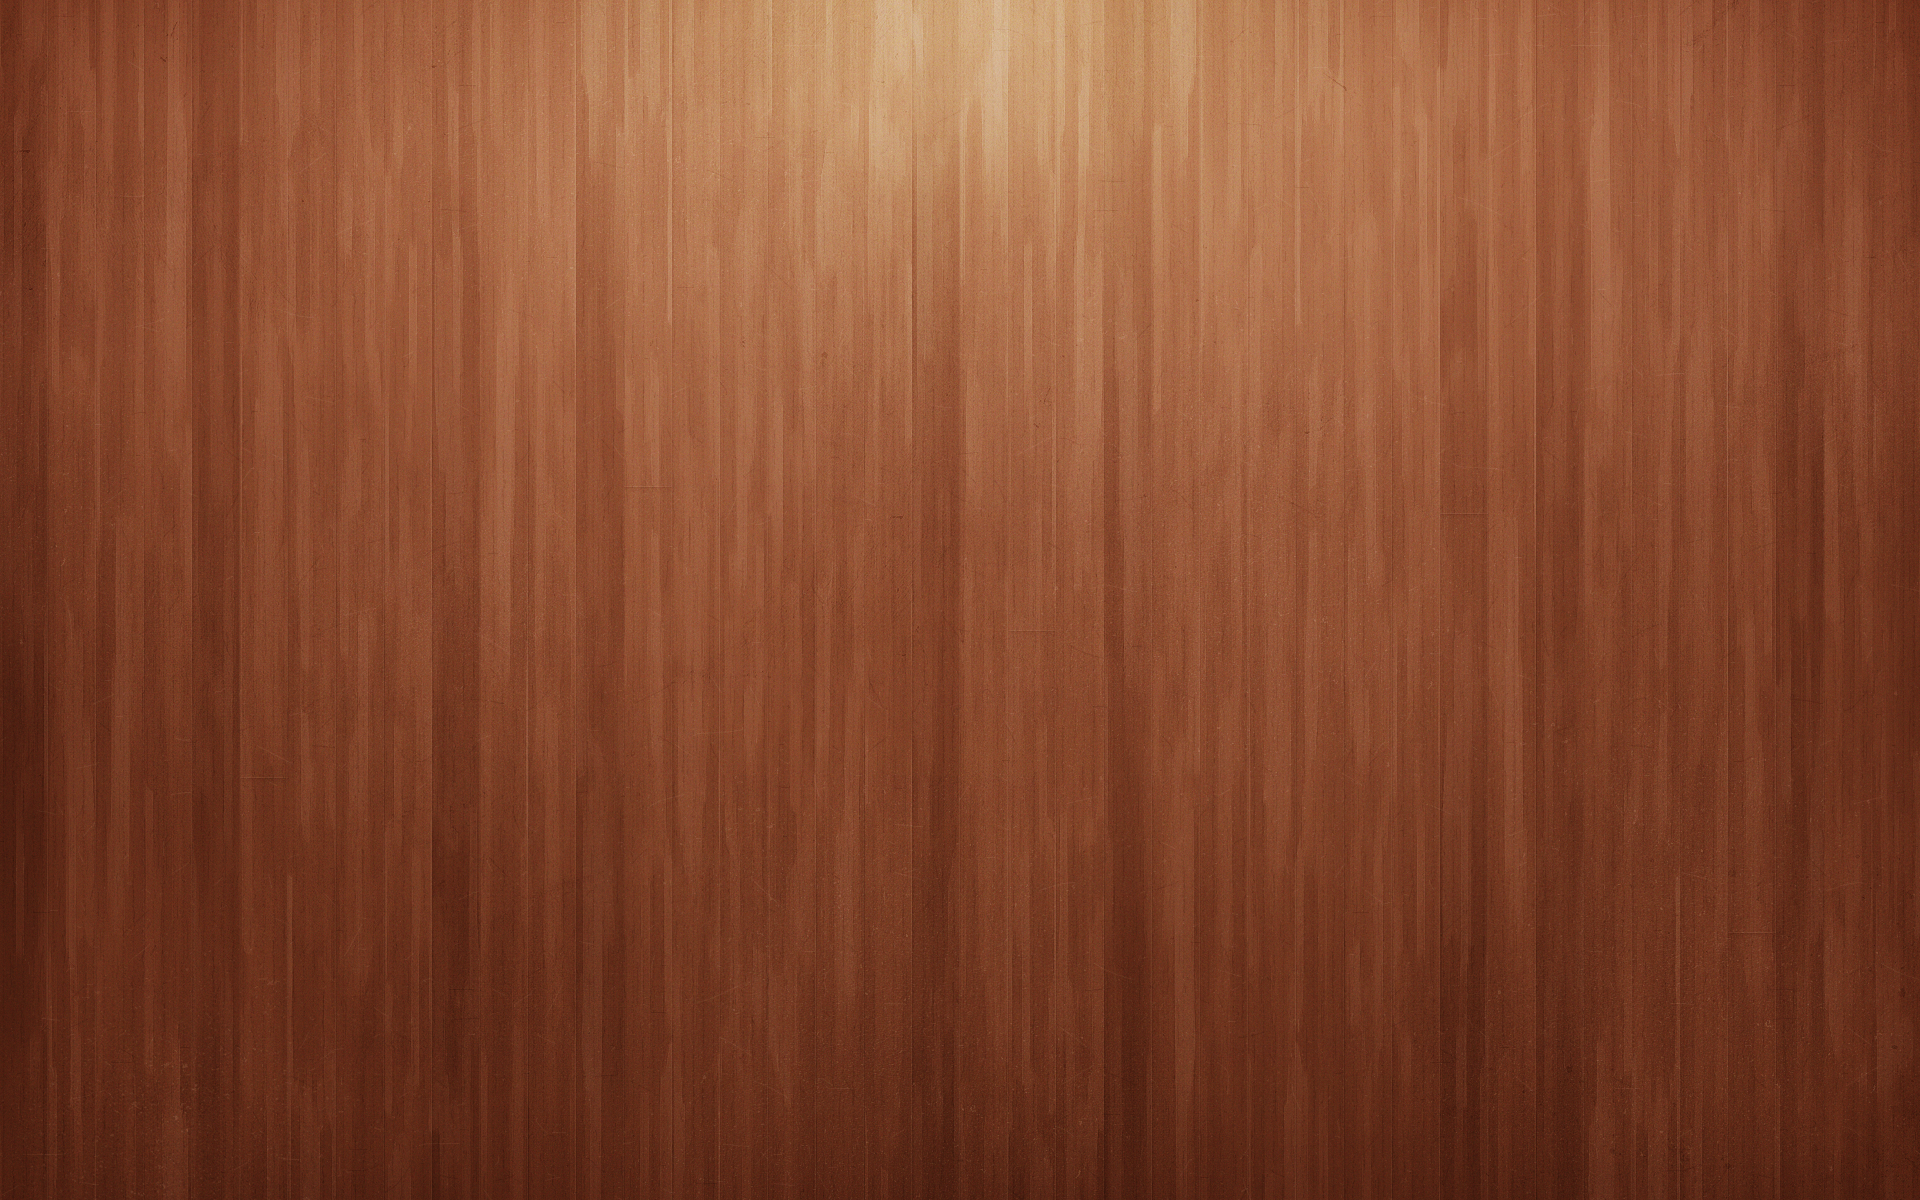 Wood wallpaper awesome wallpapers published september 16 2010 at 1920 1200 in abstract wallpaper voltagebd Choice Image